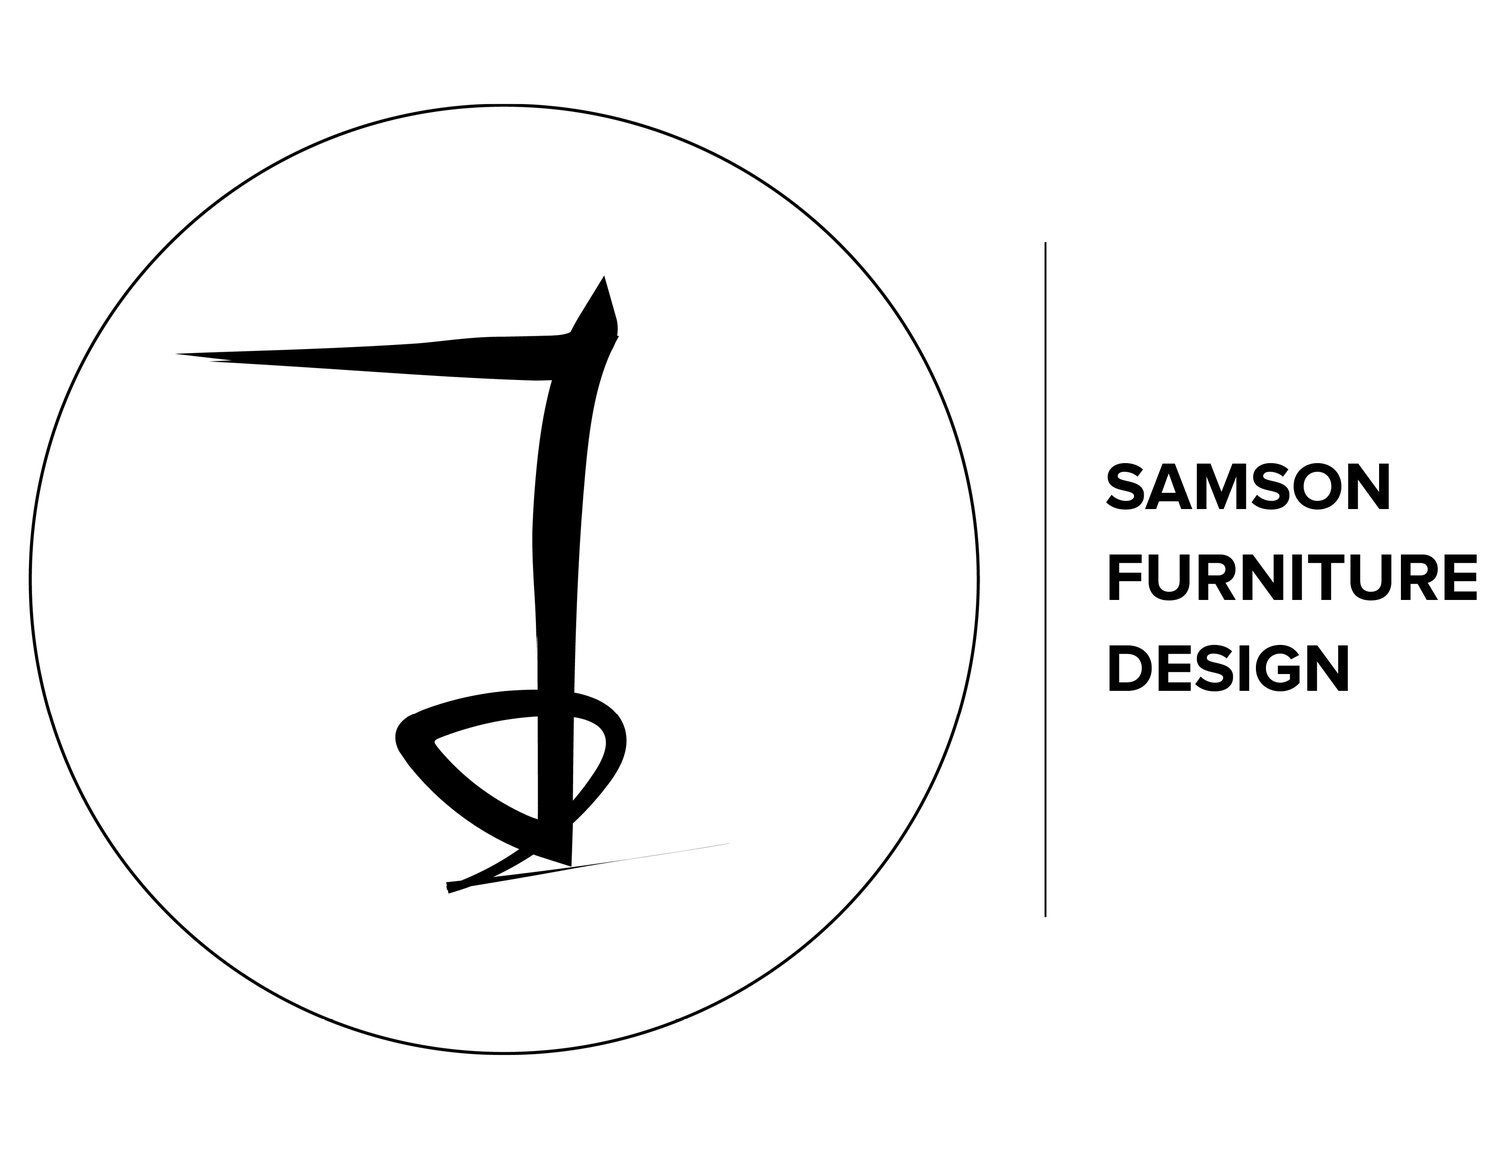 Samson Furniture Design